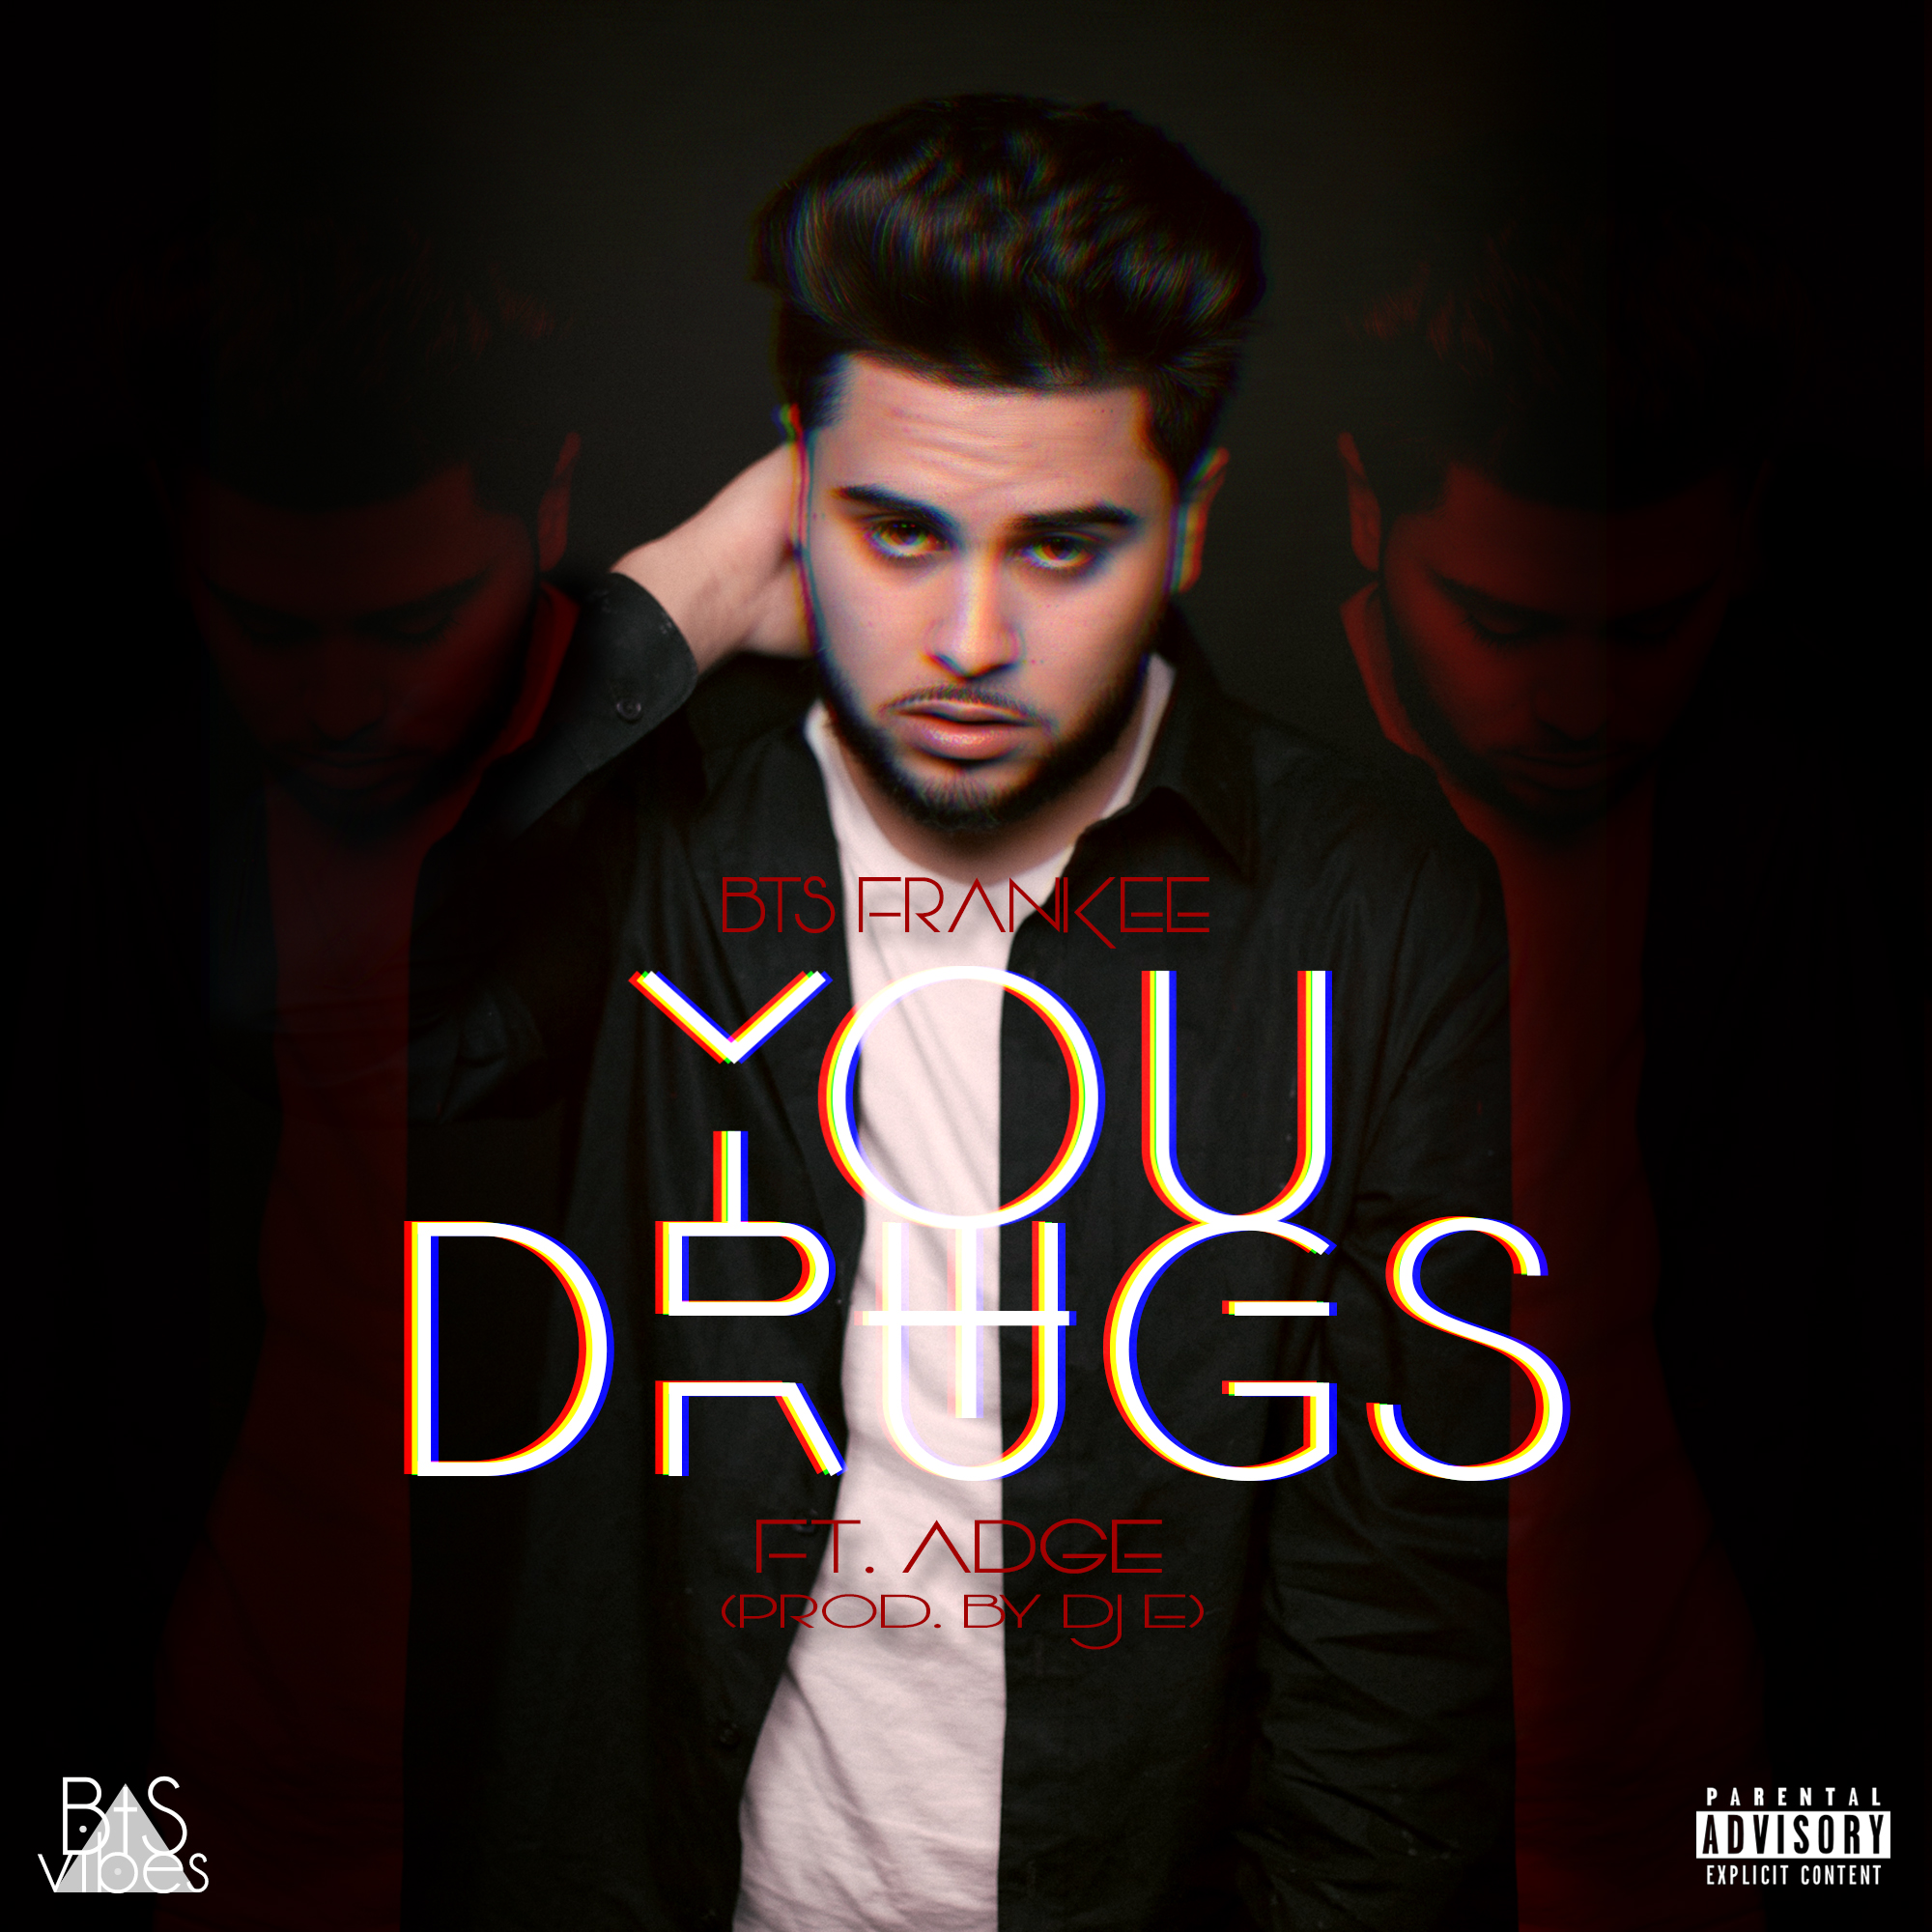 You & Drugs